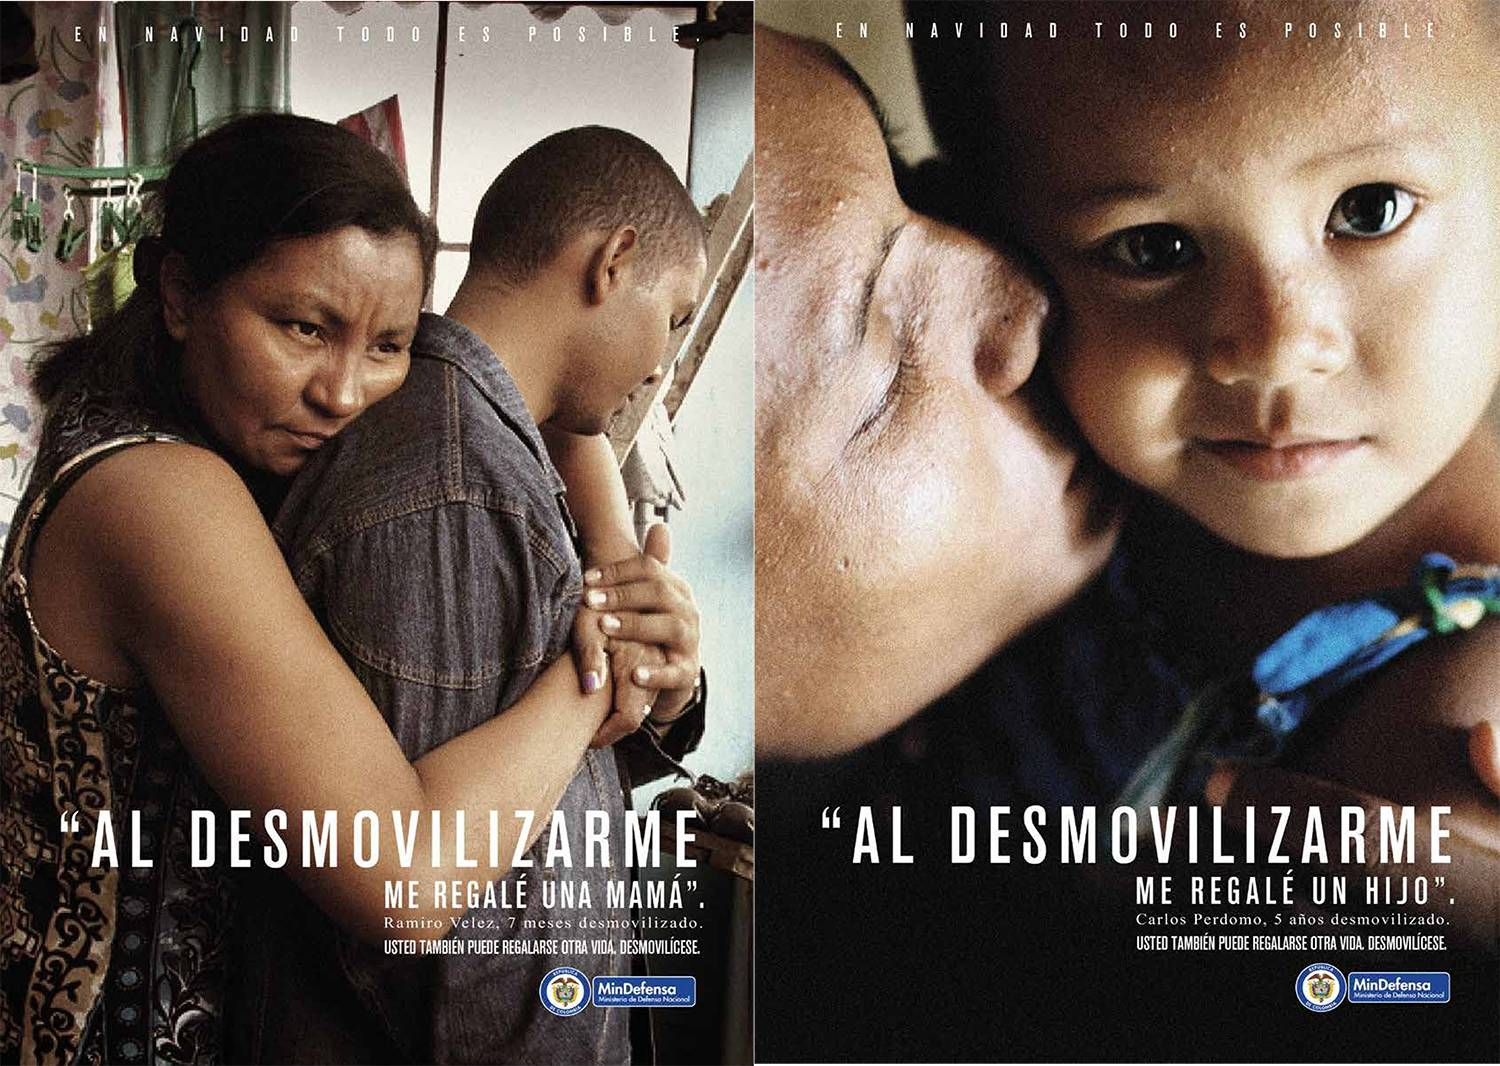 Colombian Demobilization Campaign Appeals to Giving at Christmas